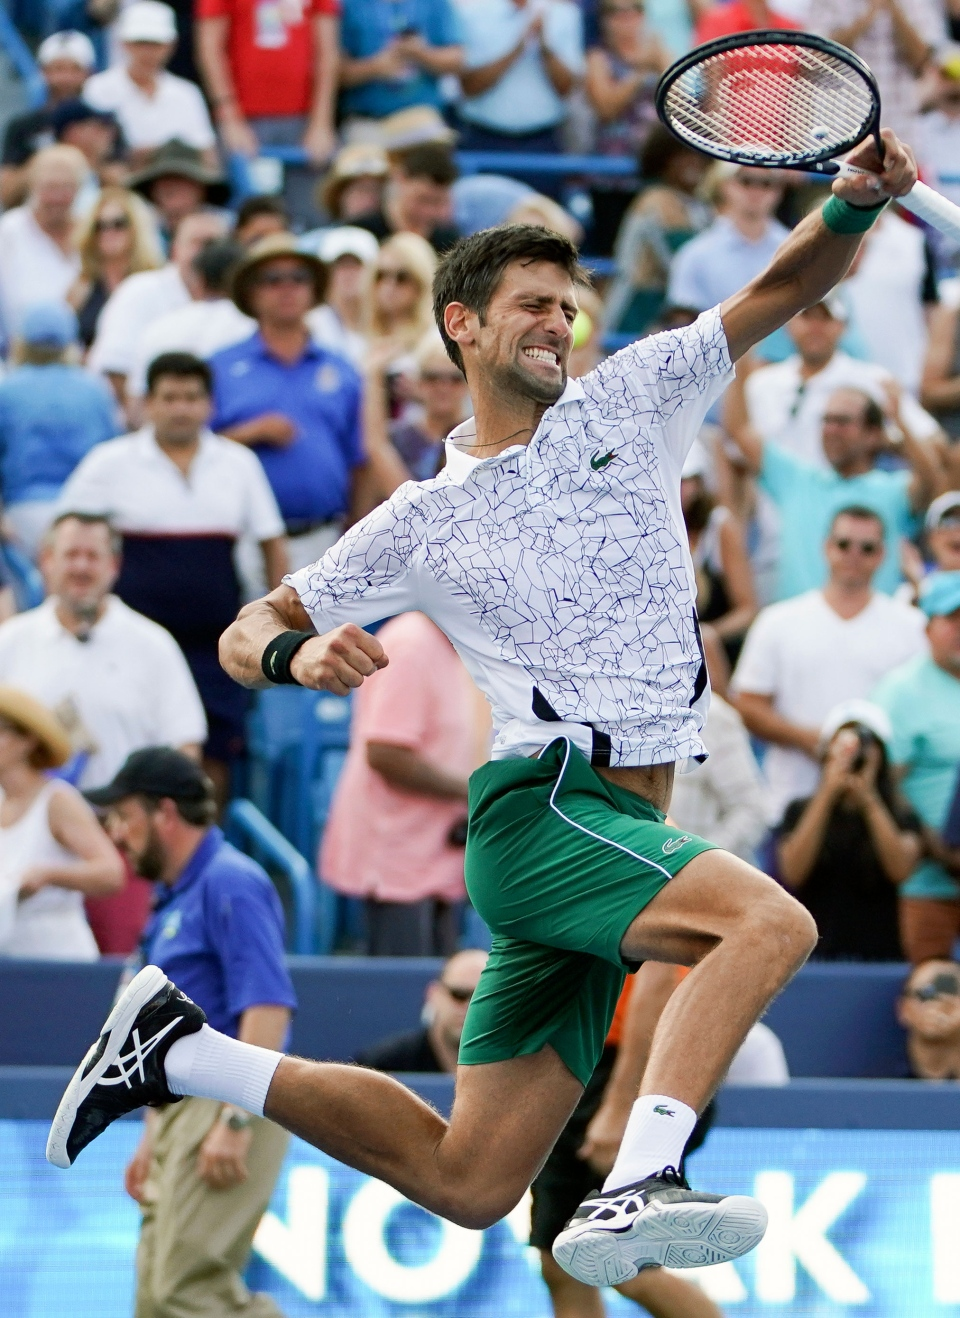 Novak Djokovic, of Serbia, reacts after defeating Roger Federer, of Switzerland, during the finals at the Western & Southern Open tennis tournament, Sunday, Aug. 19, 2018, in Mason, Ohio. (AP Photo/John Minchillo)